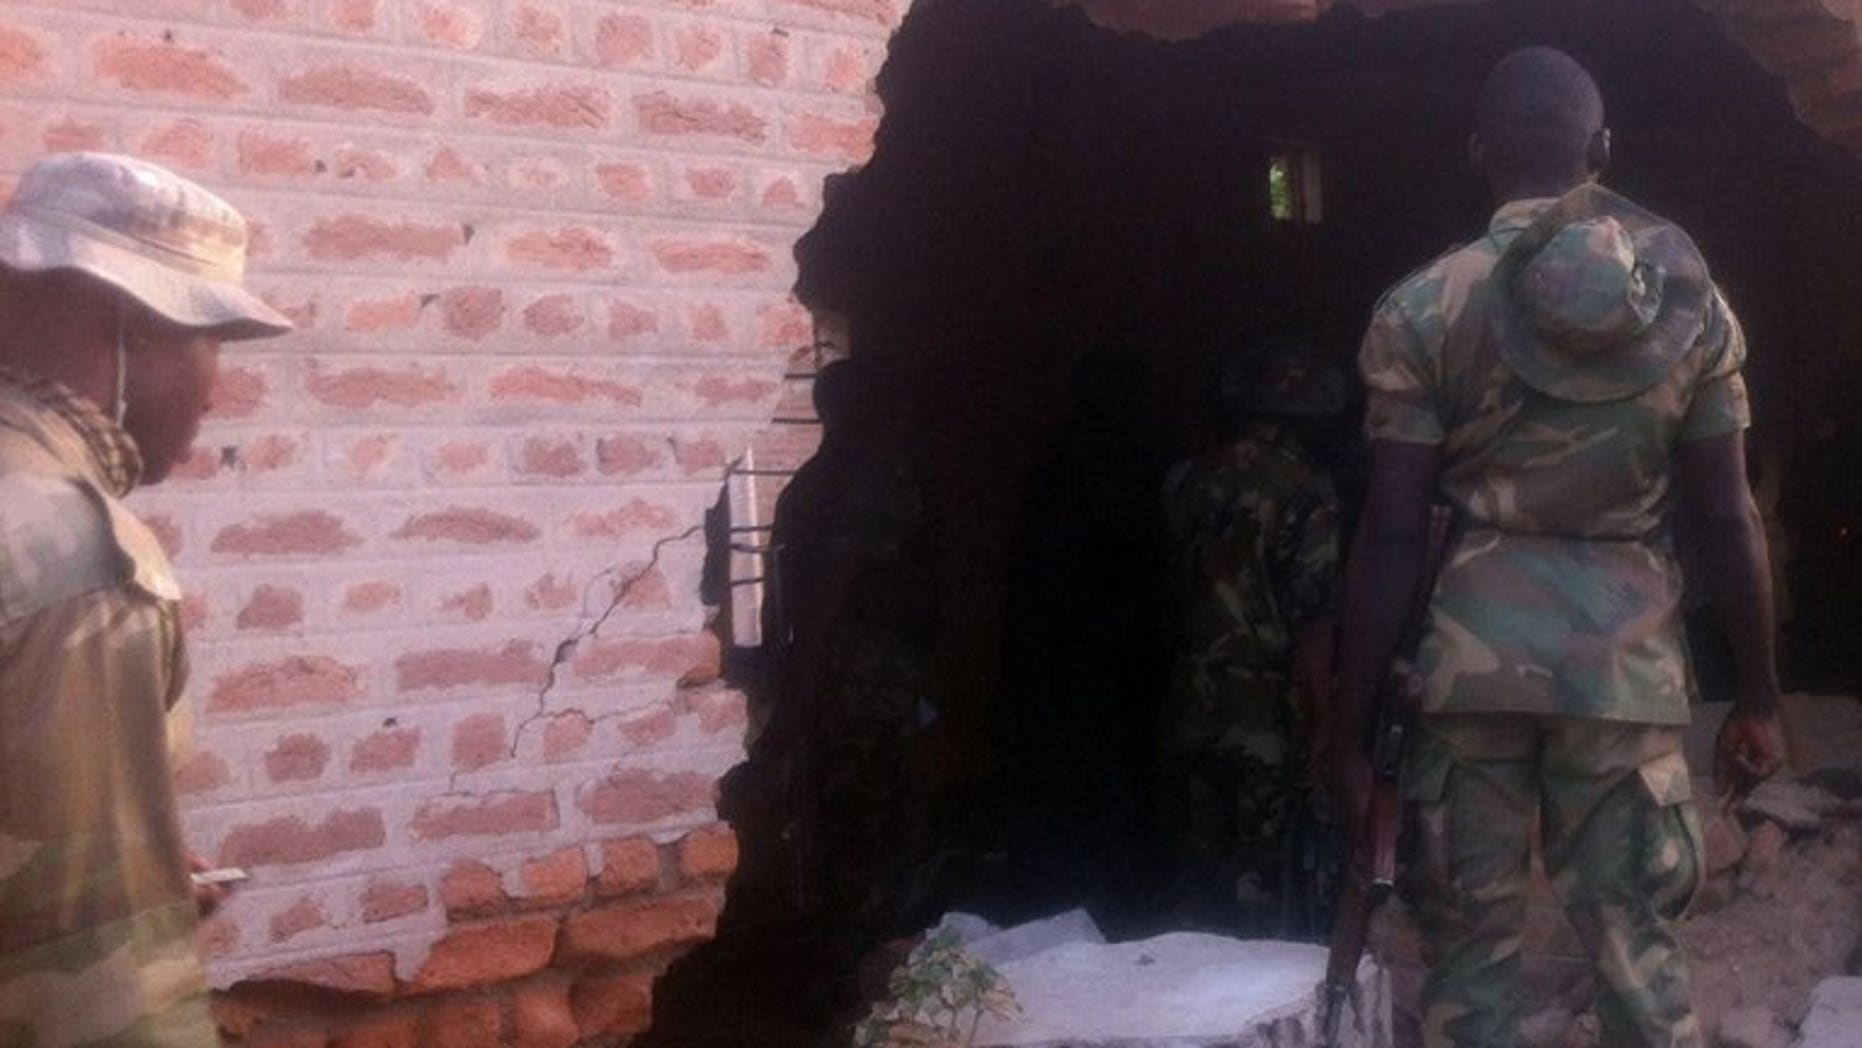 A soldier stands in front of a damaged wall at a prison after an attack in the northeastern town of Bama, on May 7, 2013. Nigeria's northeastern Yobe state on Sunday ordered the closure of all secondary schools after an incident that saw suspected Islamist extremists kill 42 people in a gun and bomb attack on a boarding school.